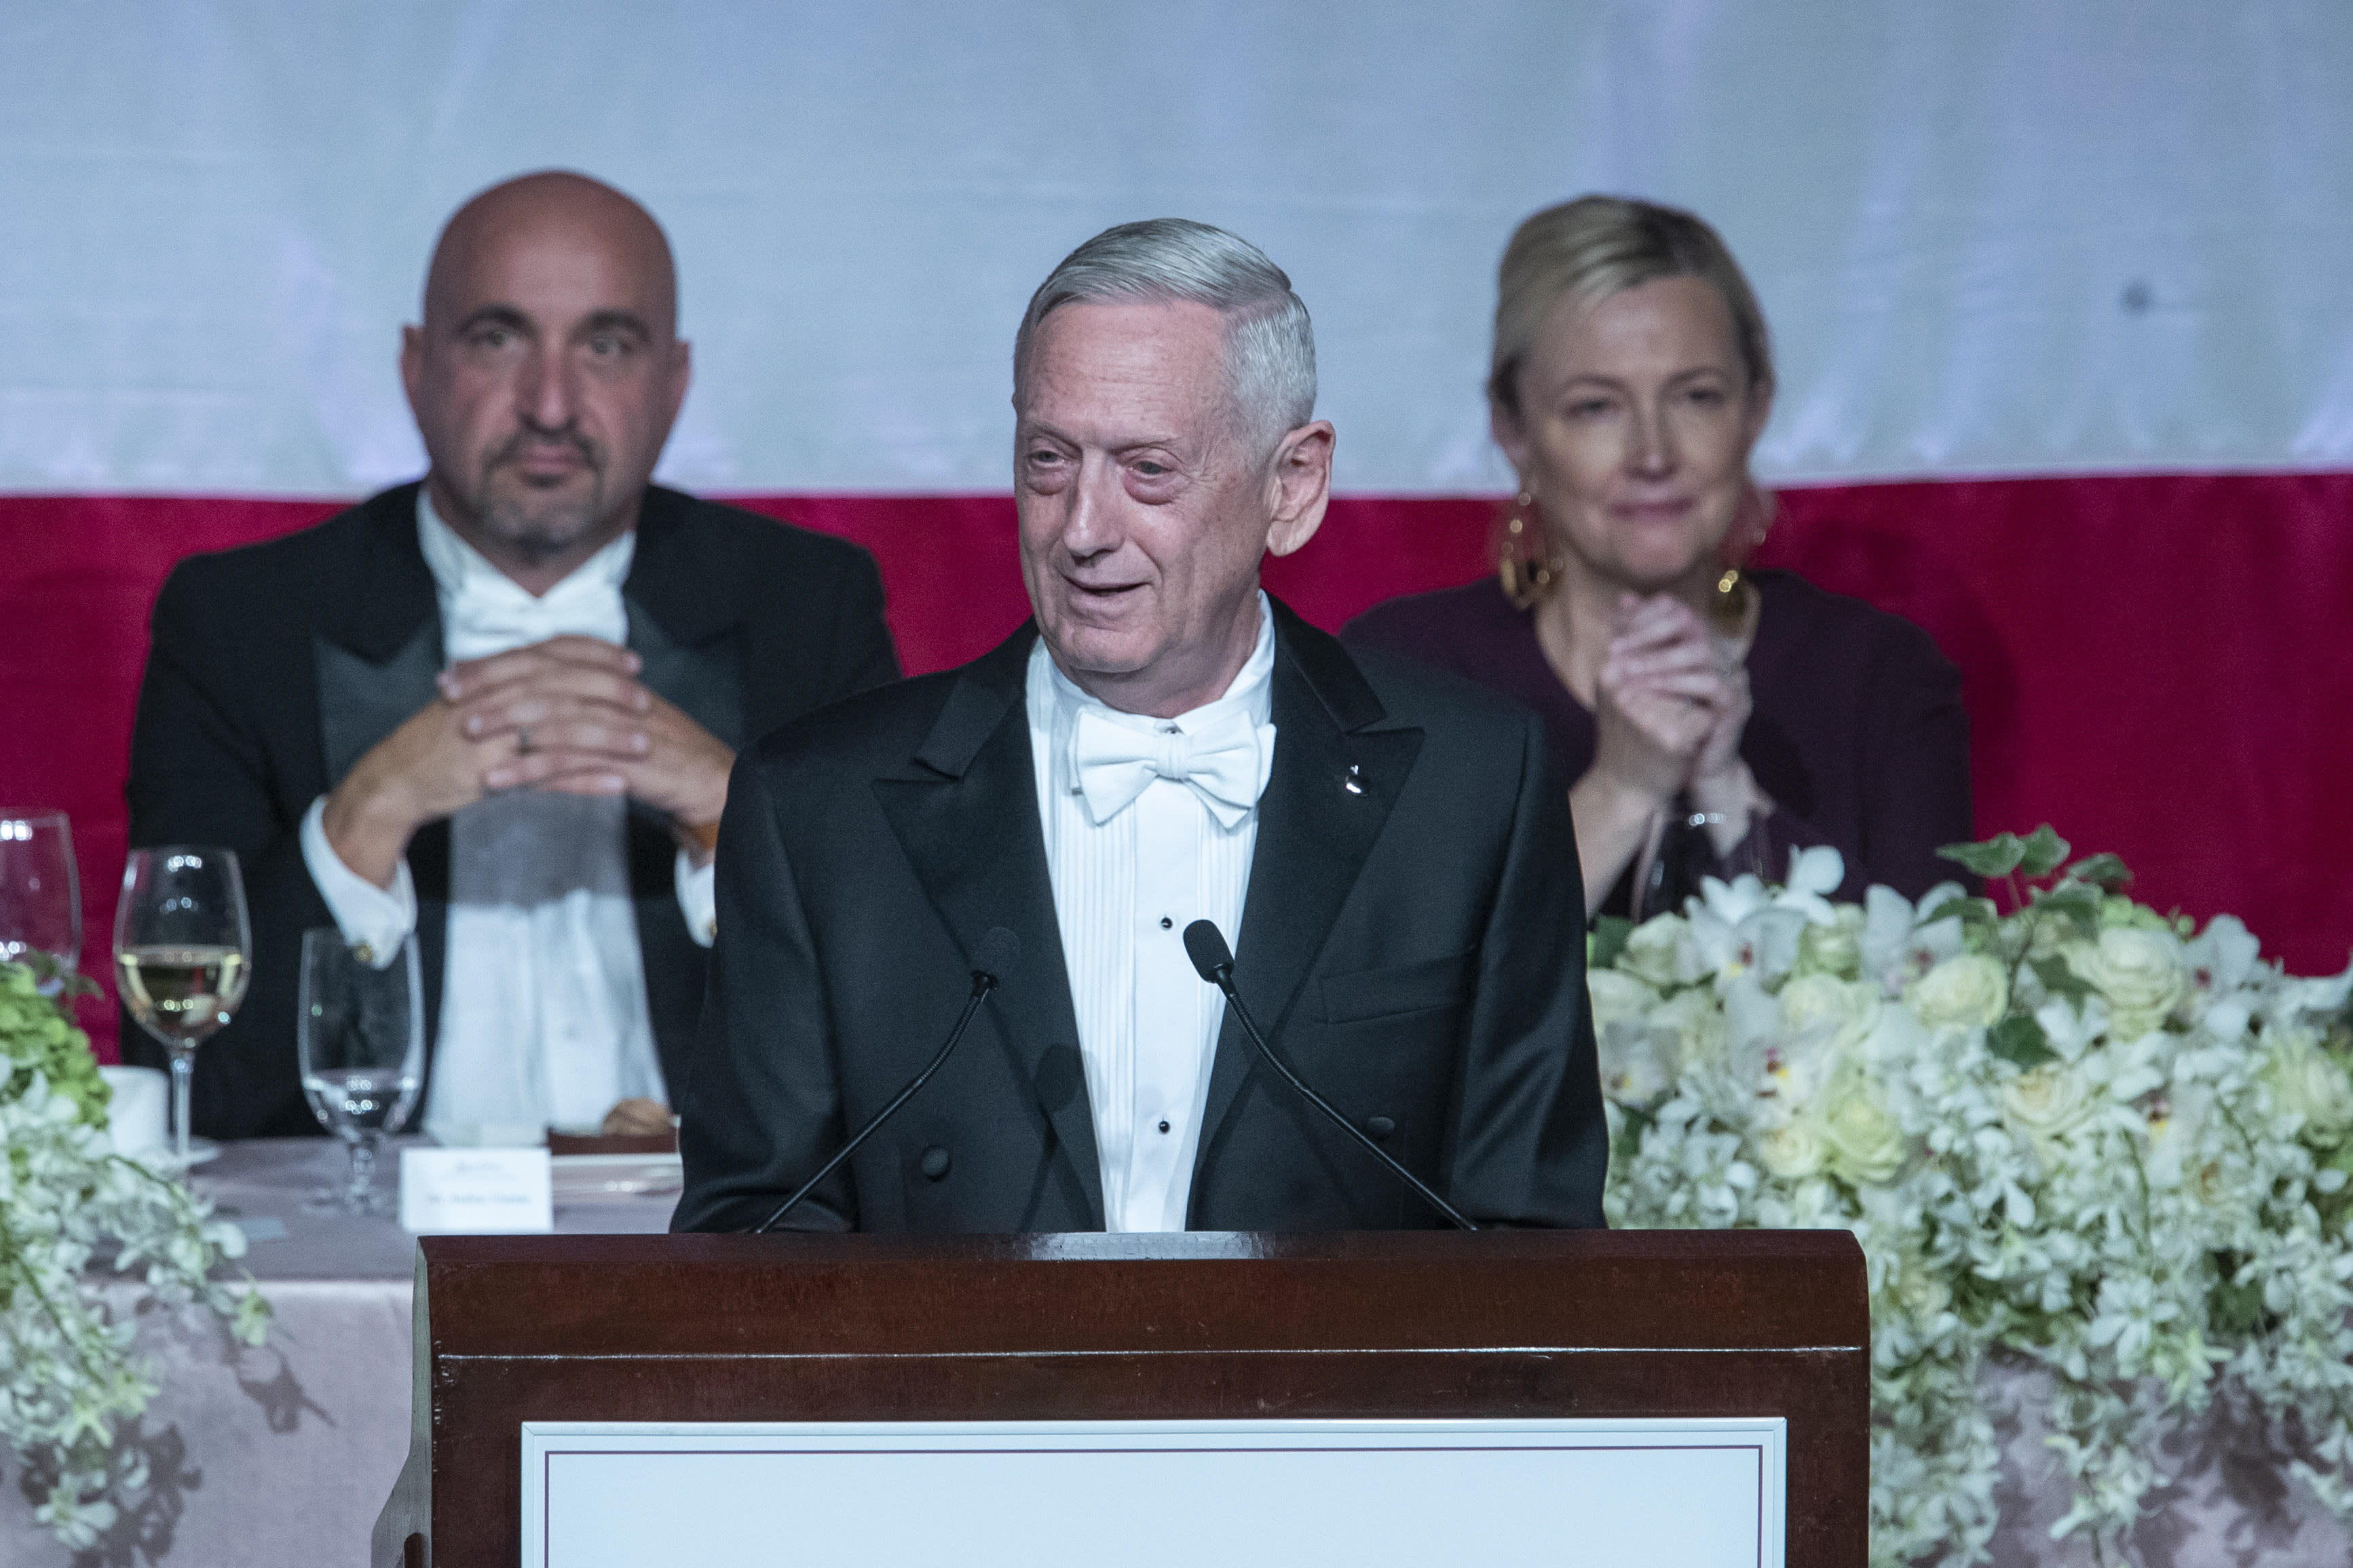 Mattis hits back at Trump's insult saying he's 'the greatest overrated general'